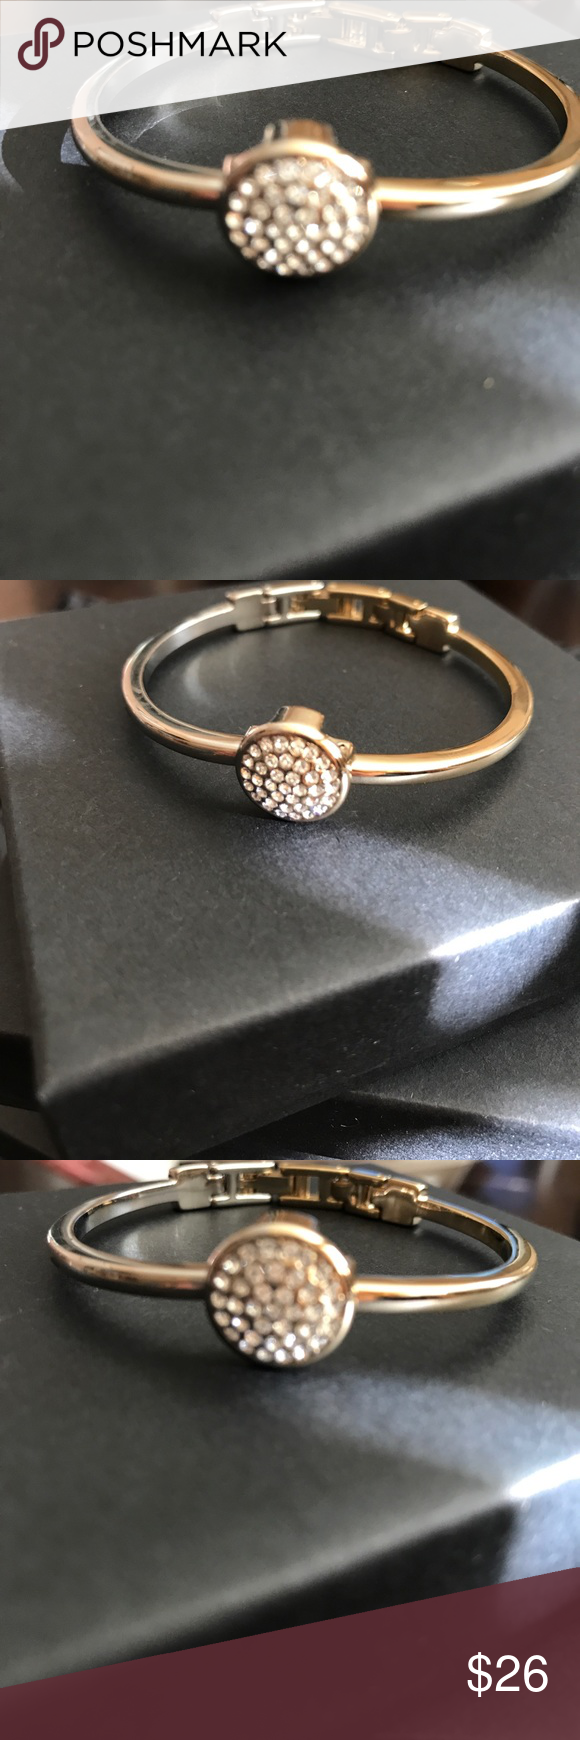 """Vintage Anne Klein lion head signed cuff bracelet Beautiful vintage piece!! 1/2 gold plated and 1/2 silver plated, round crystal covered medallion, vintage fold over safety clasp. Cuff is 7 1/4"""" and medallion is 1/2"""" in diameter. Excellent condition. Anne Klein Jewelry Bracelets"""